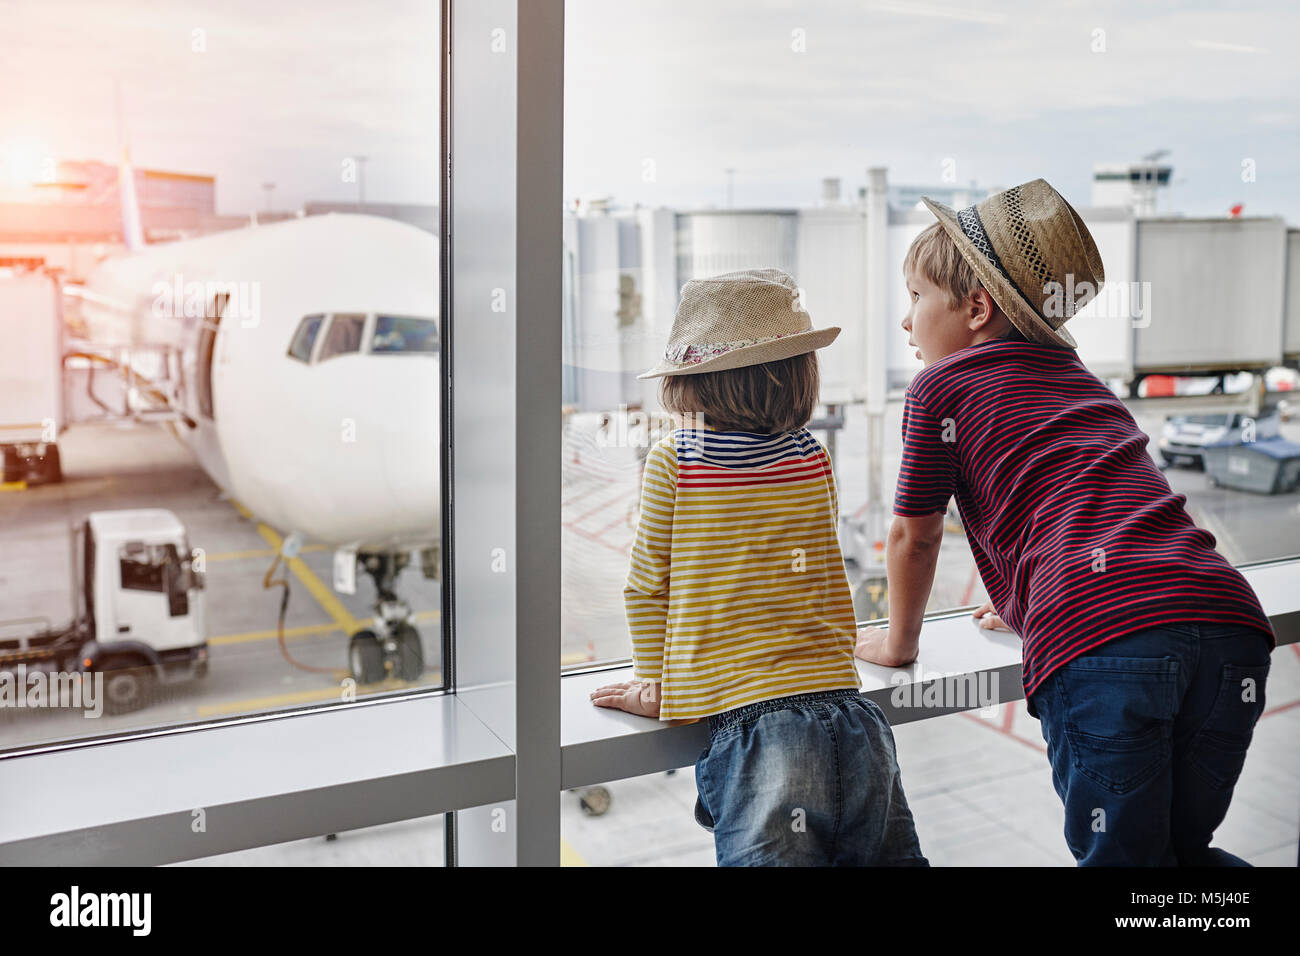 Two children wearing straw hats looking through window to airplane on the apron - Stock Image